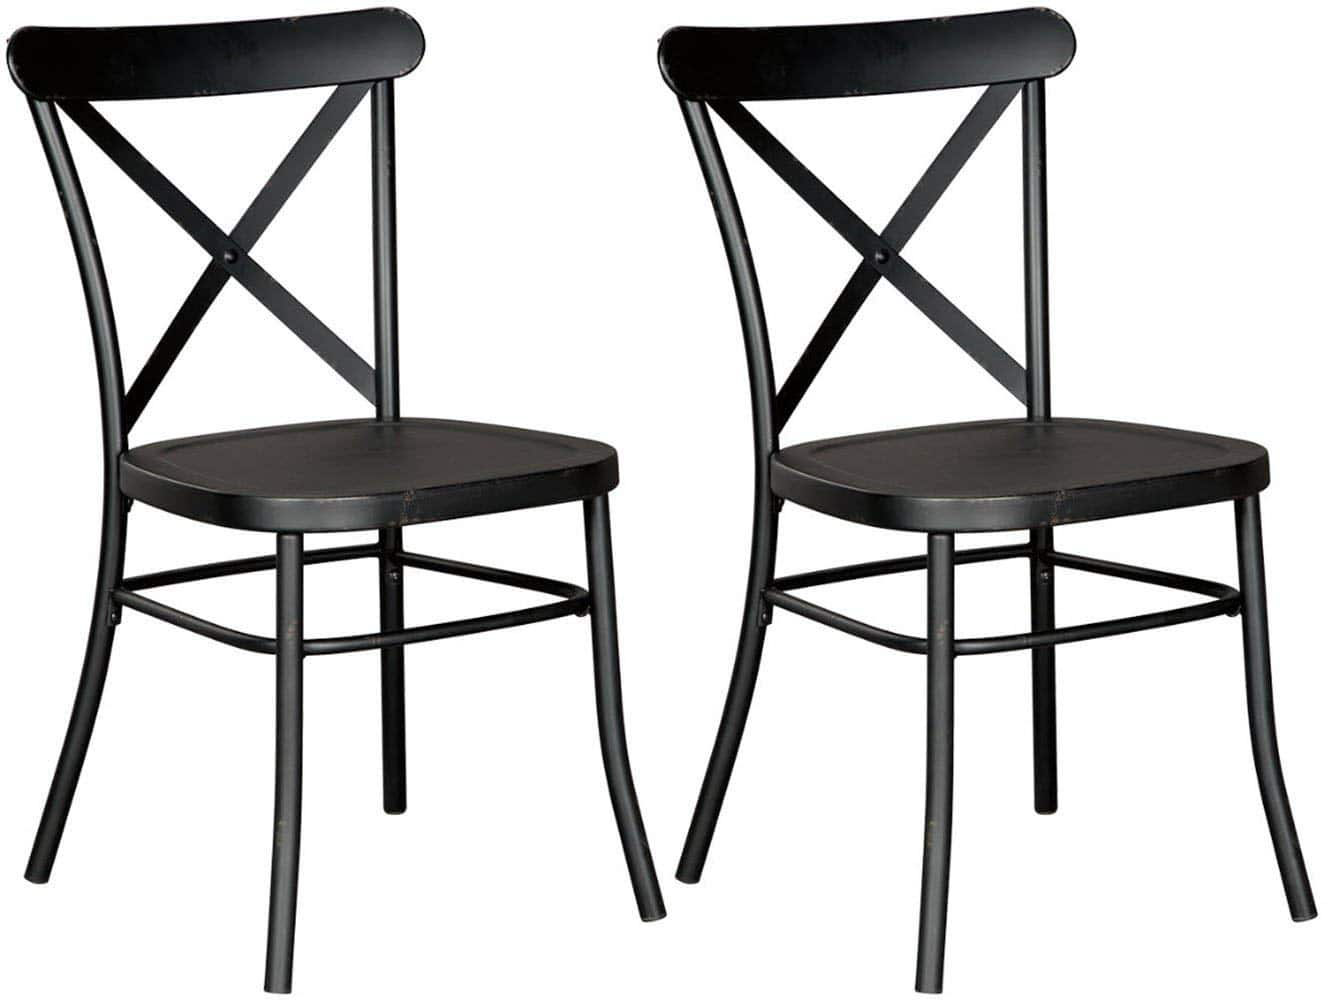 Ashley Furniture Signature Design   Minnona Dining Side Chair   Set Of 2    Cross Back   Vintage Casual Style   Antique Black Finished Metal $16.27 FS  Prime